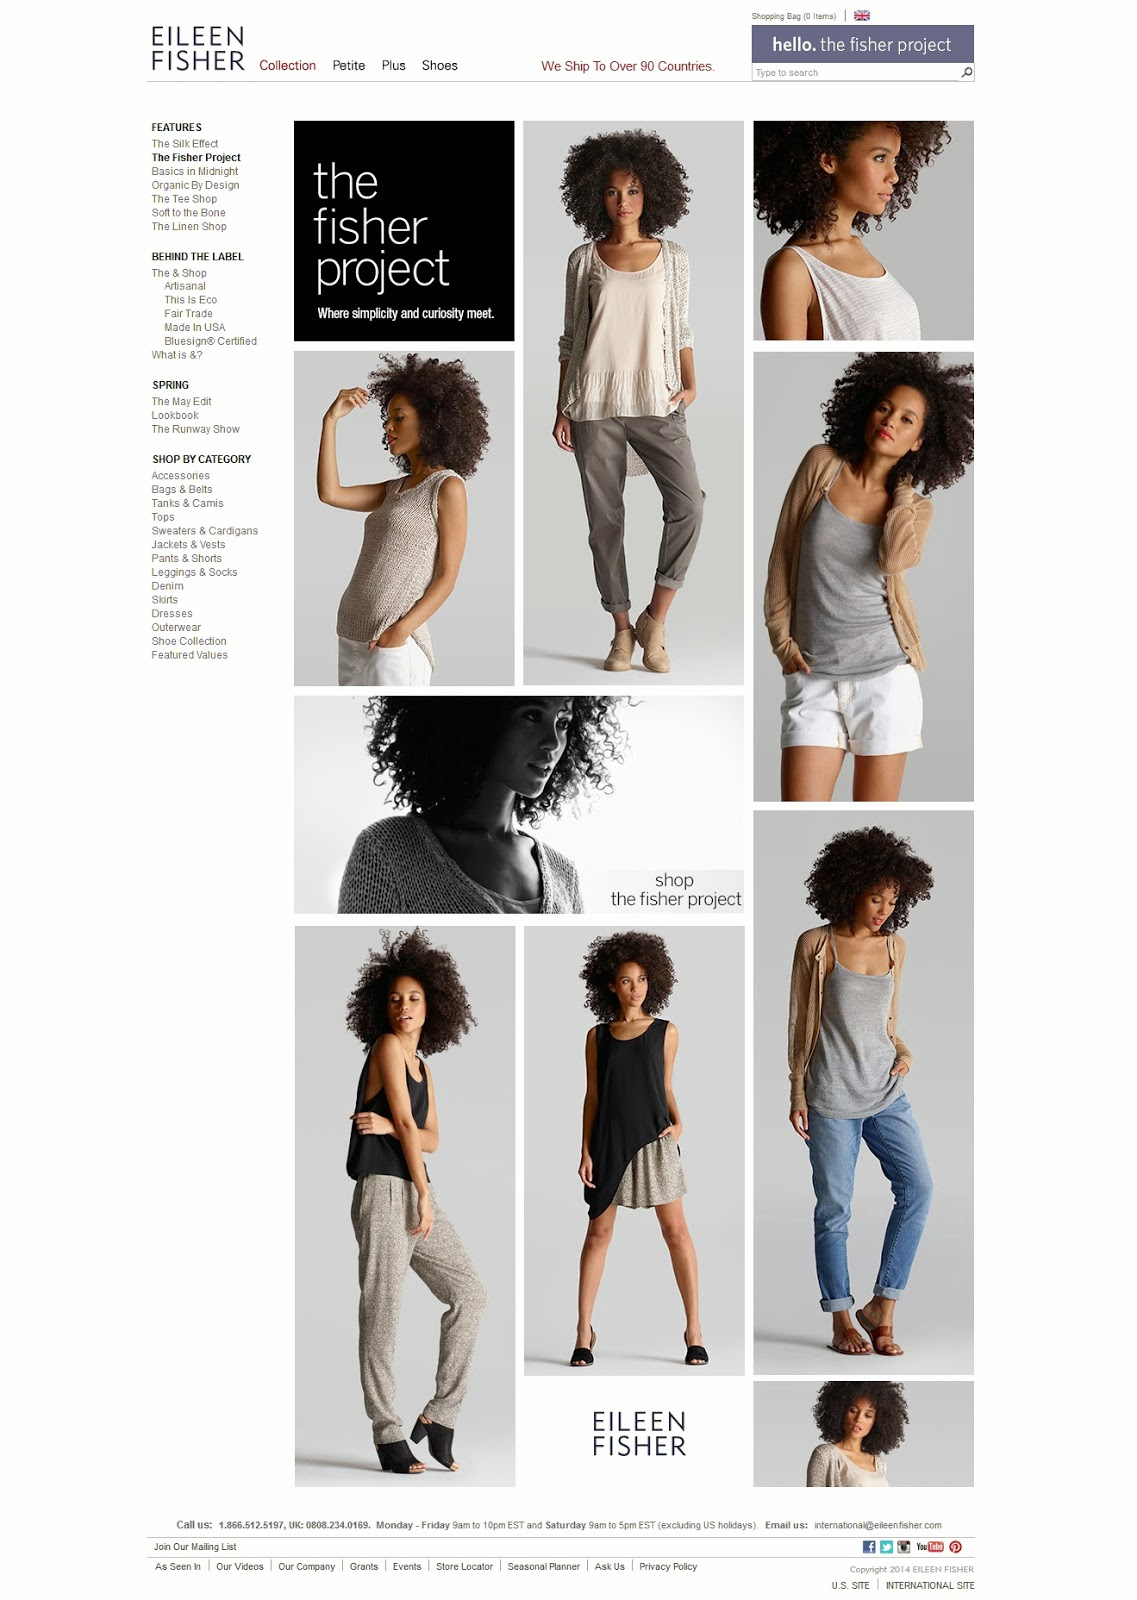 http://www.eileenfisher.com/EileenFisher/collection/Features/the_fisher_project.jsp?bmLocale=en_US